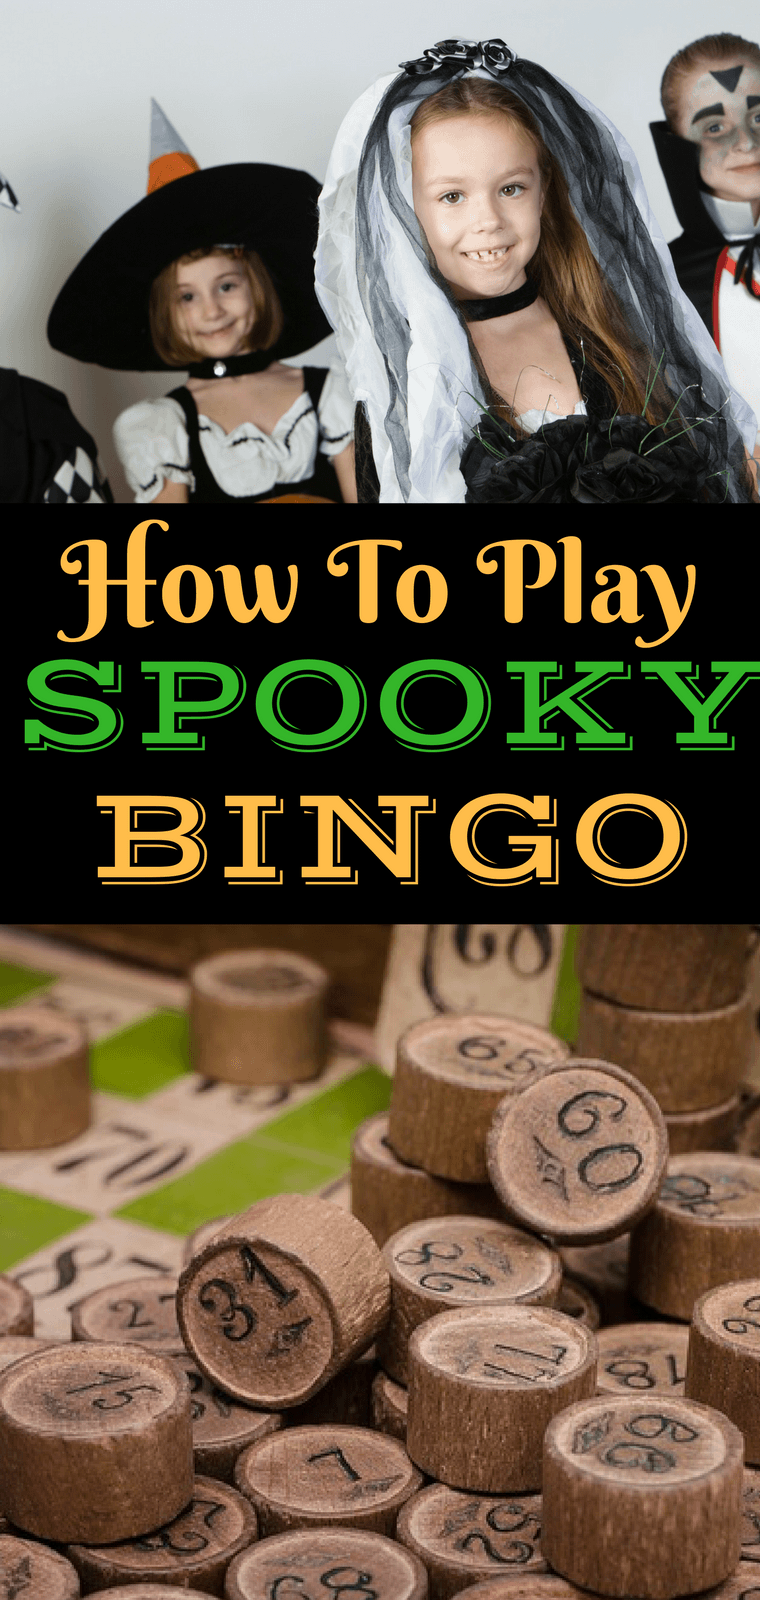 how to play bingo at a bingo hall